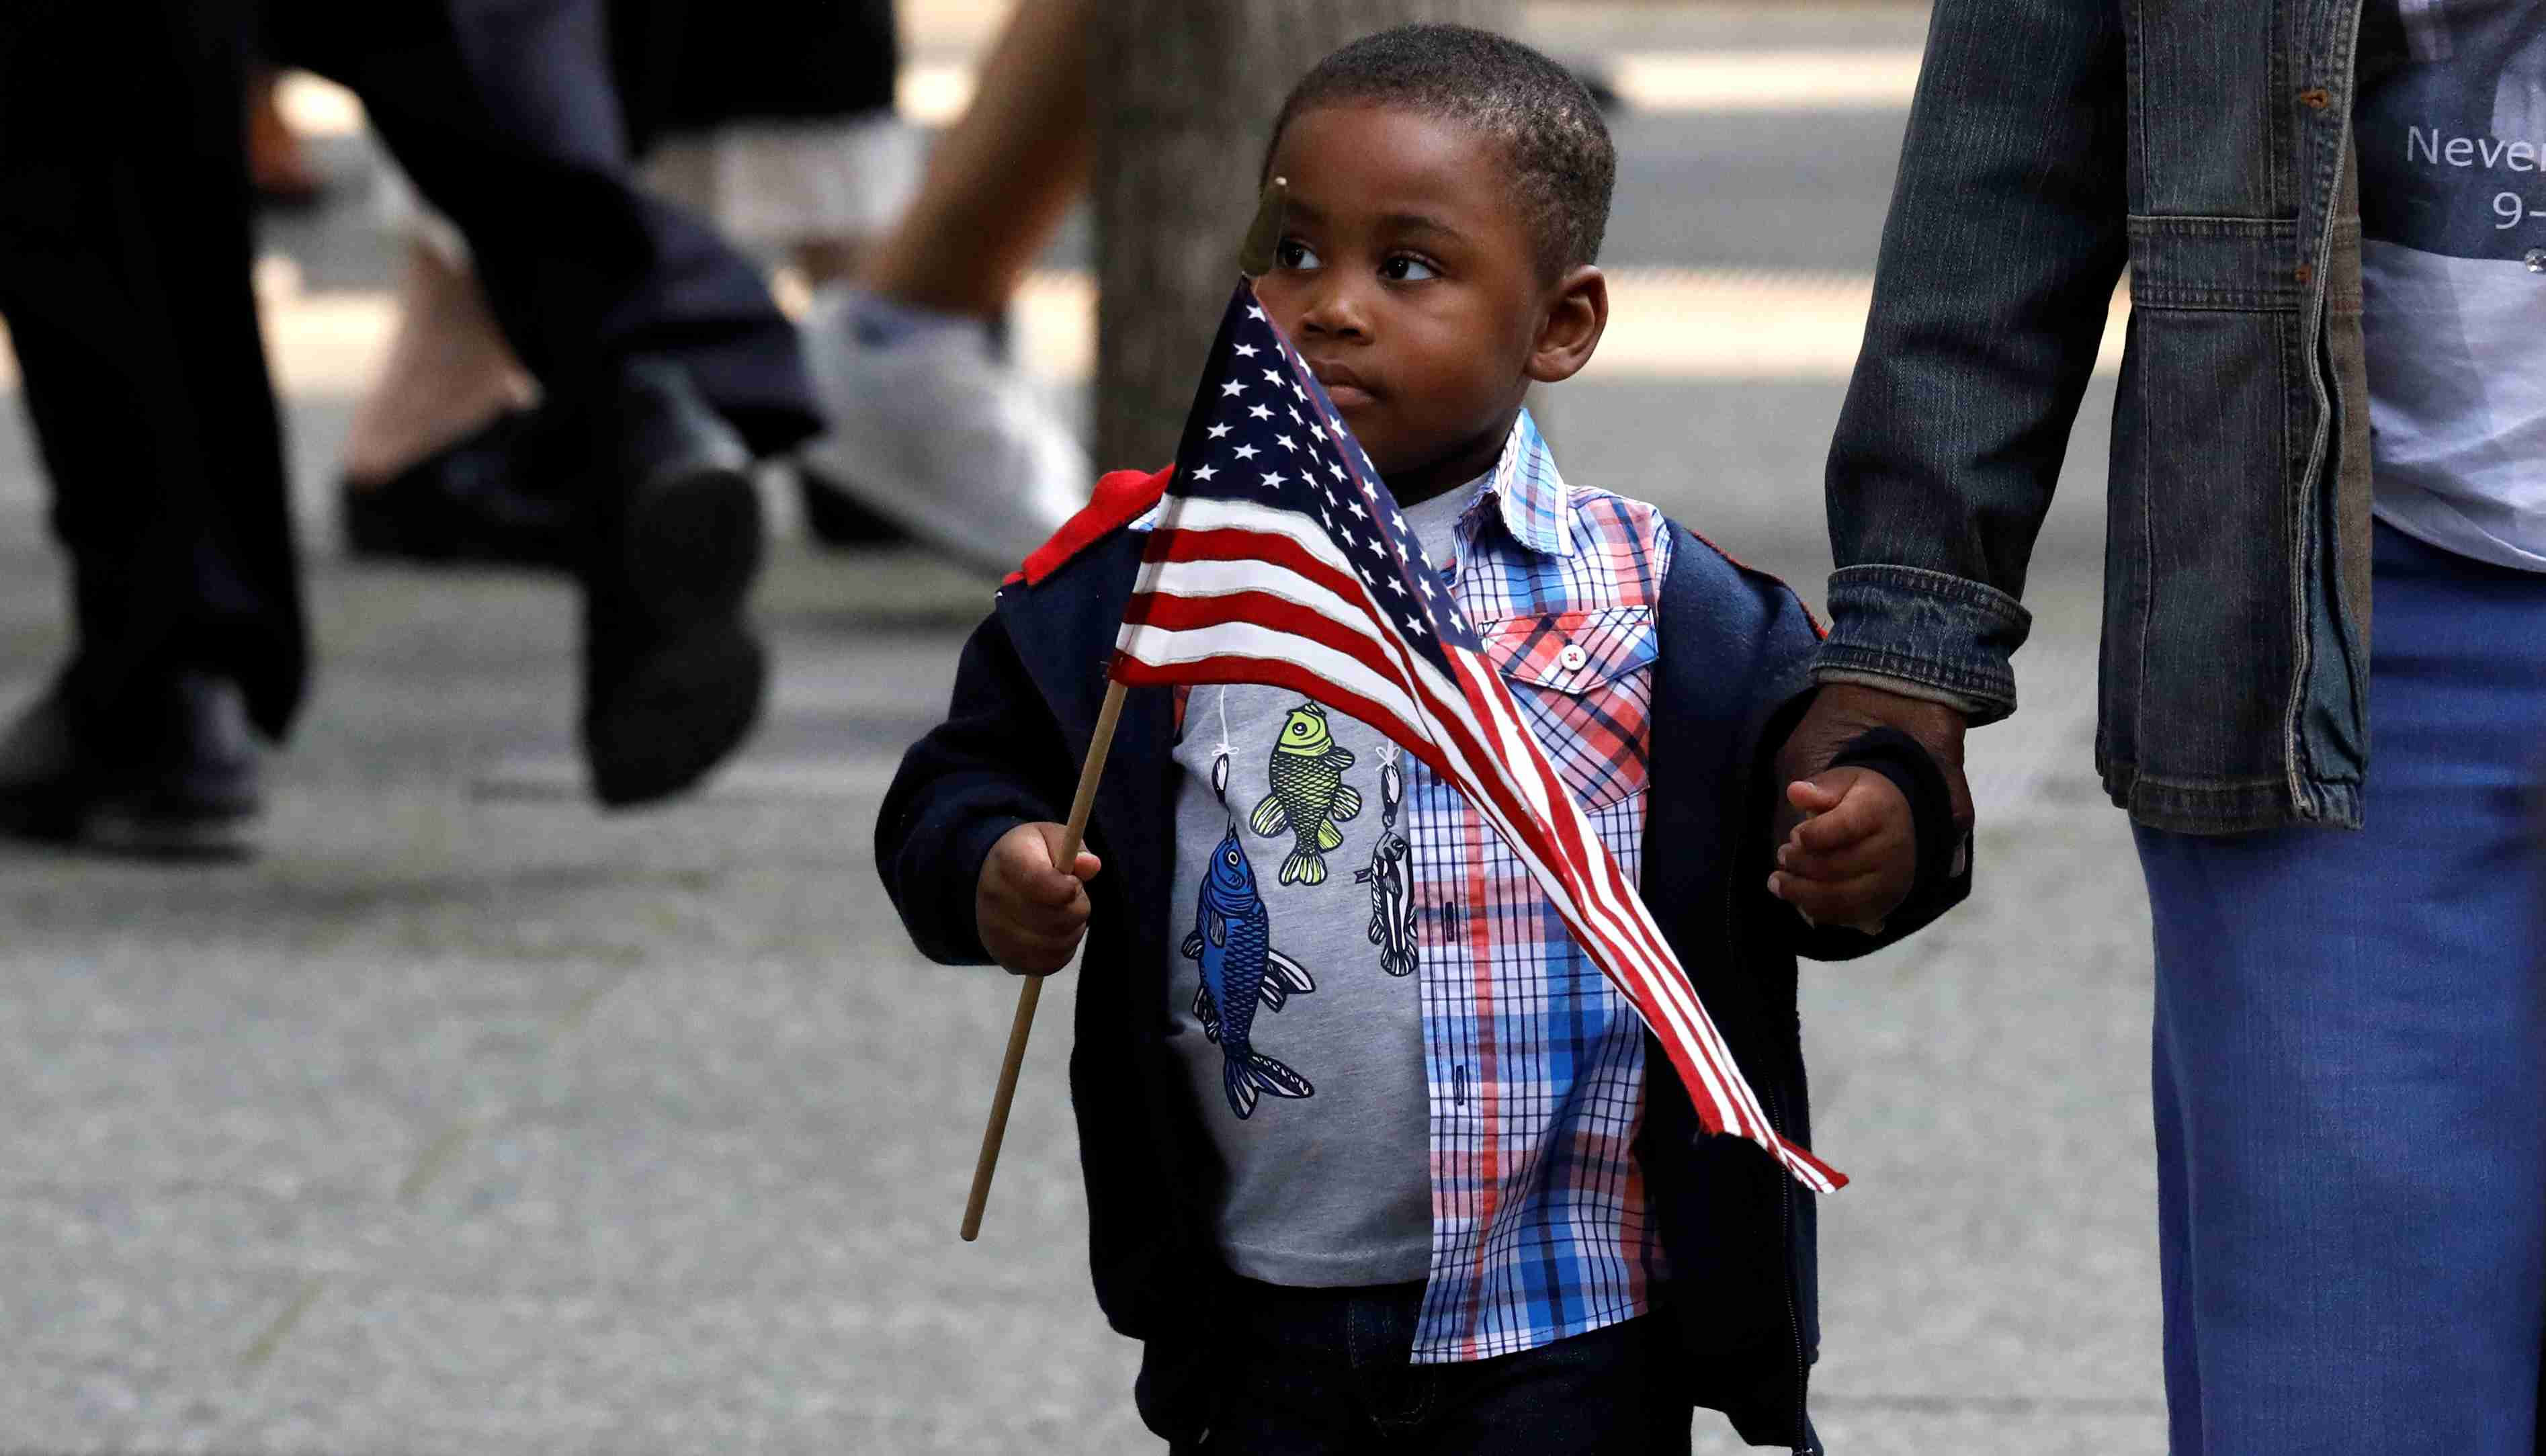 A young boy of color carries an American flag